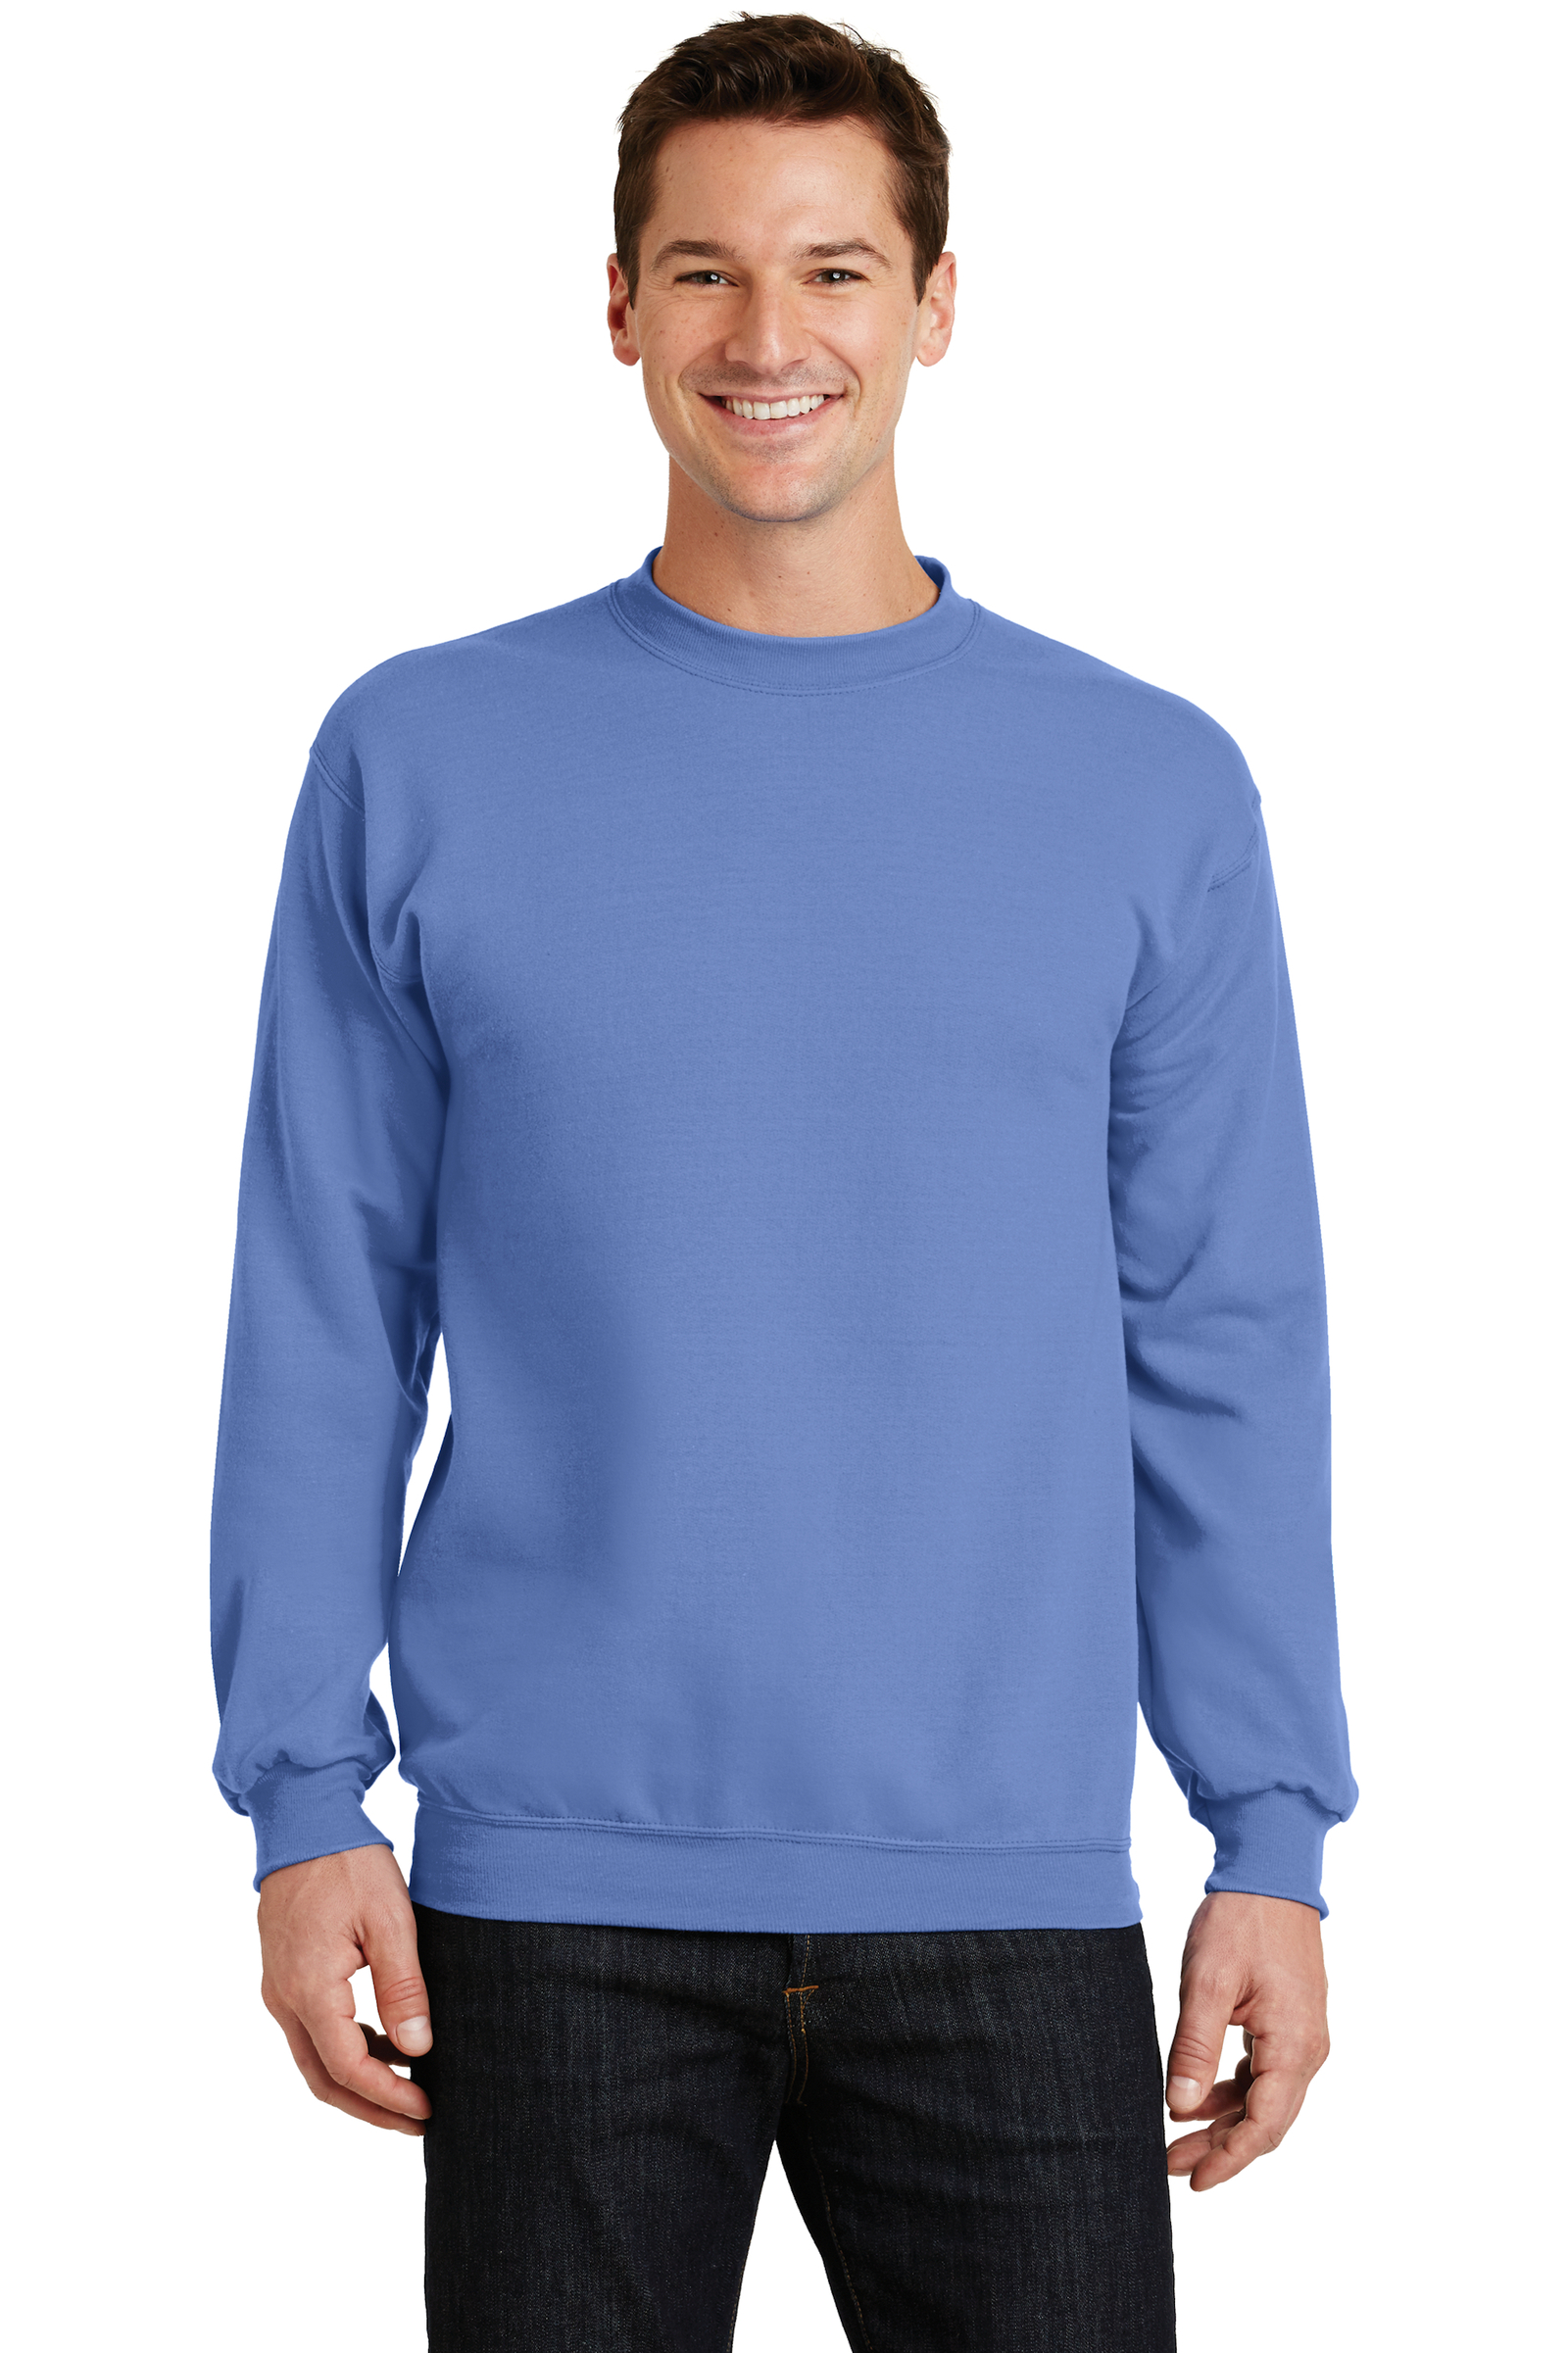 Port & Company Embroidered Men's Core Fleece Crewneck Sweatshirt